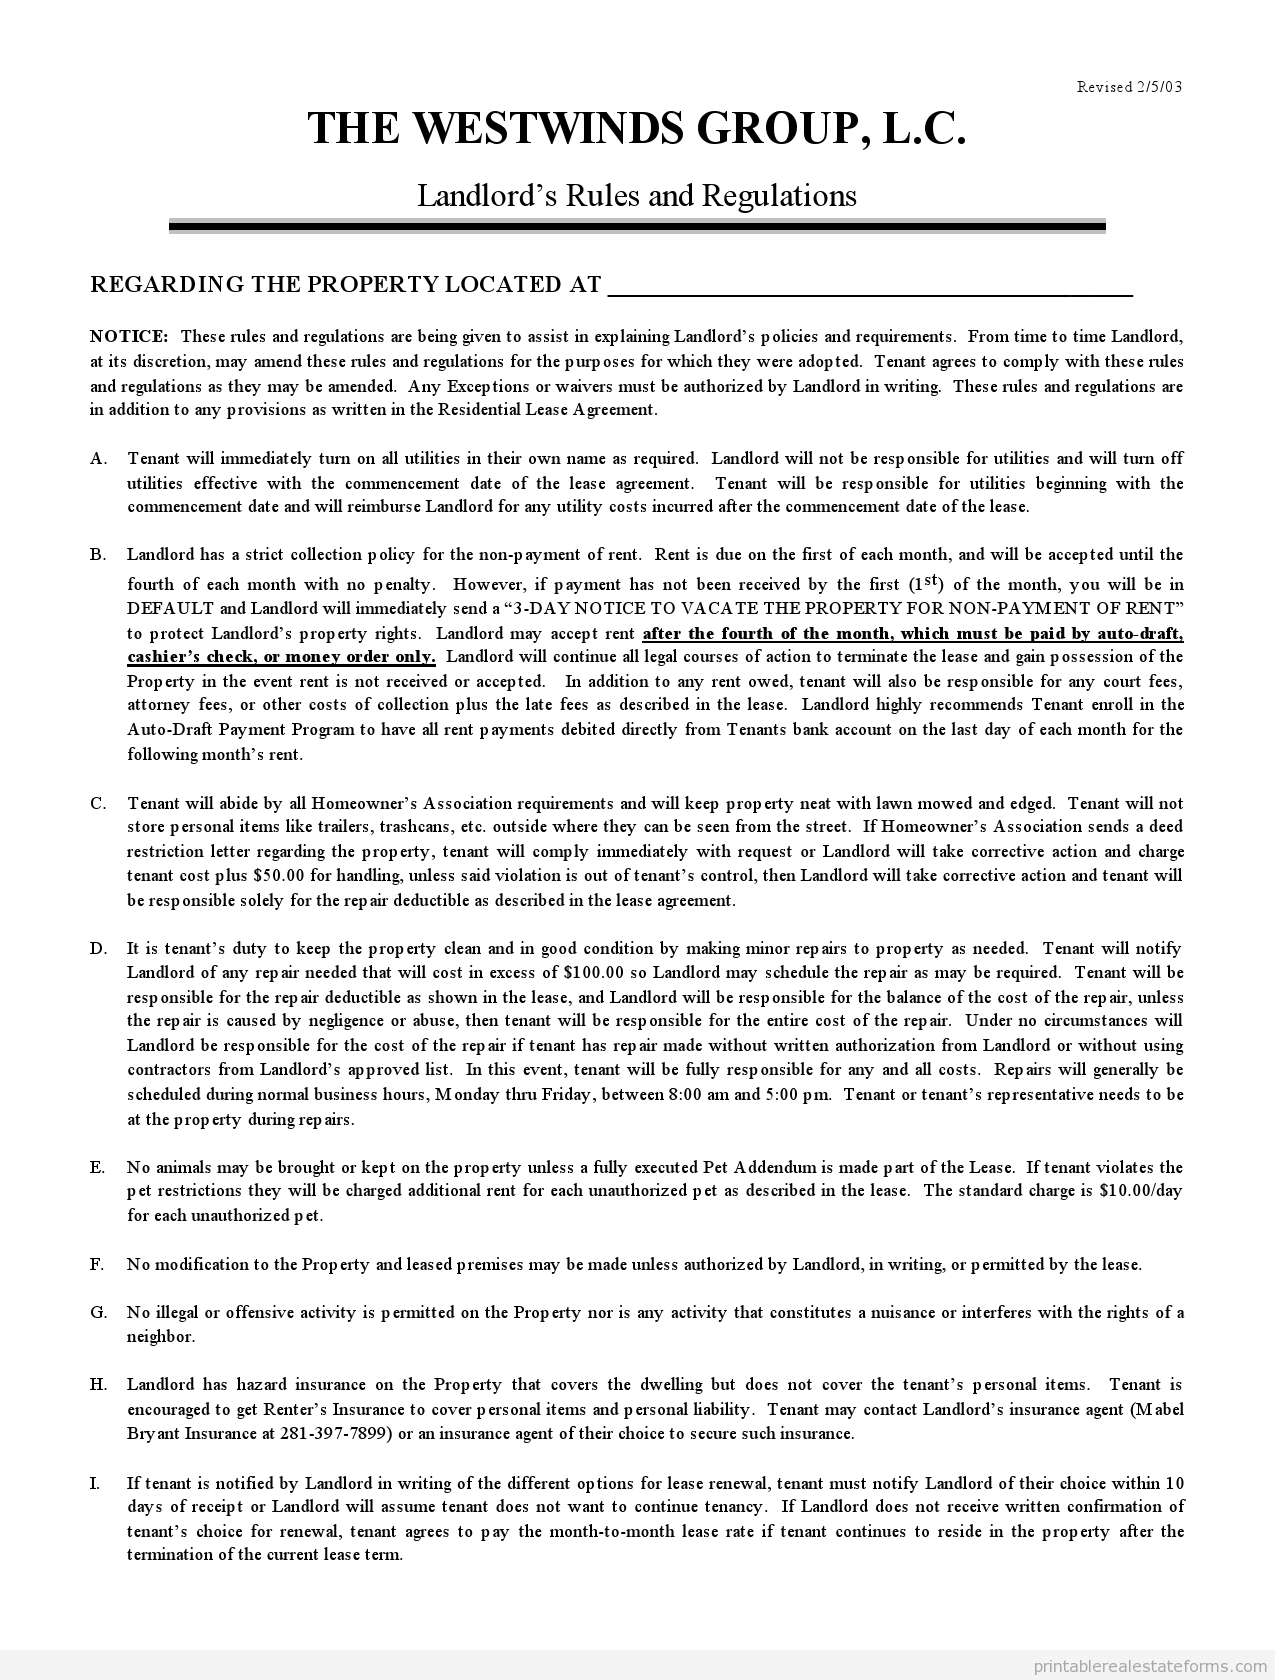 Sample Printable landlords rules and regulations Form | Sample ...